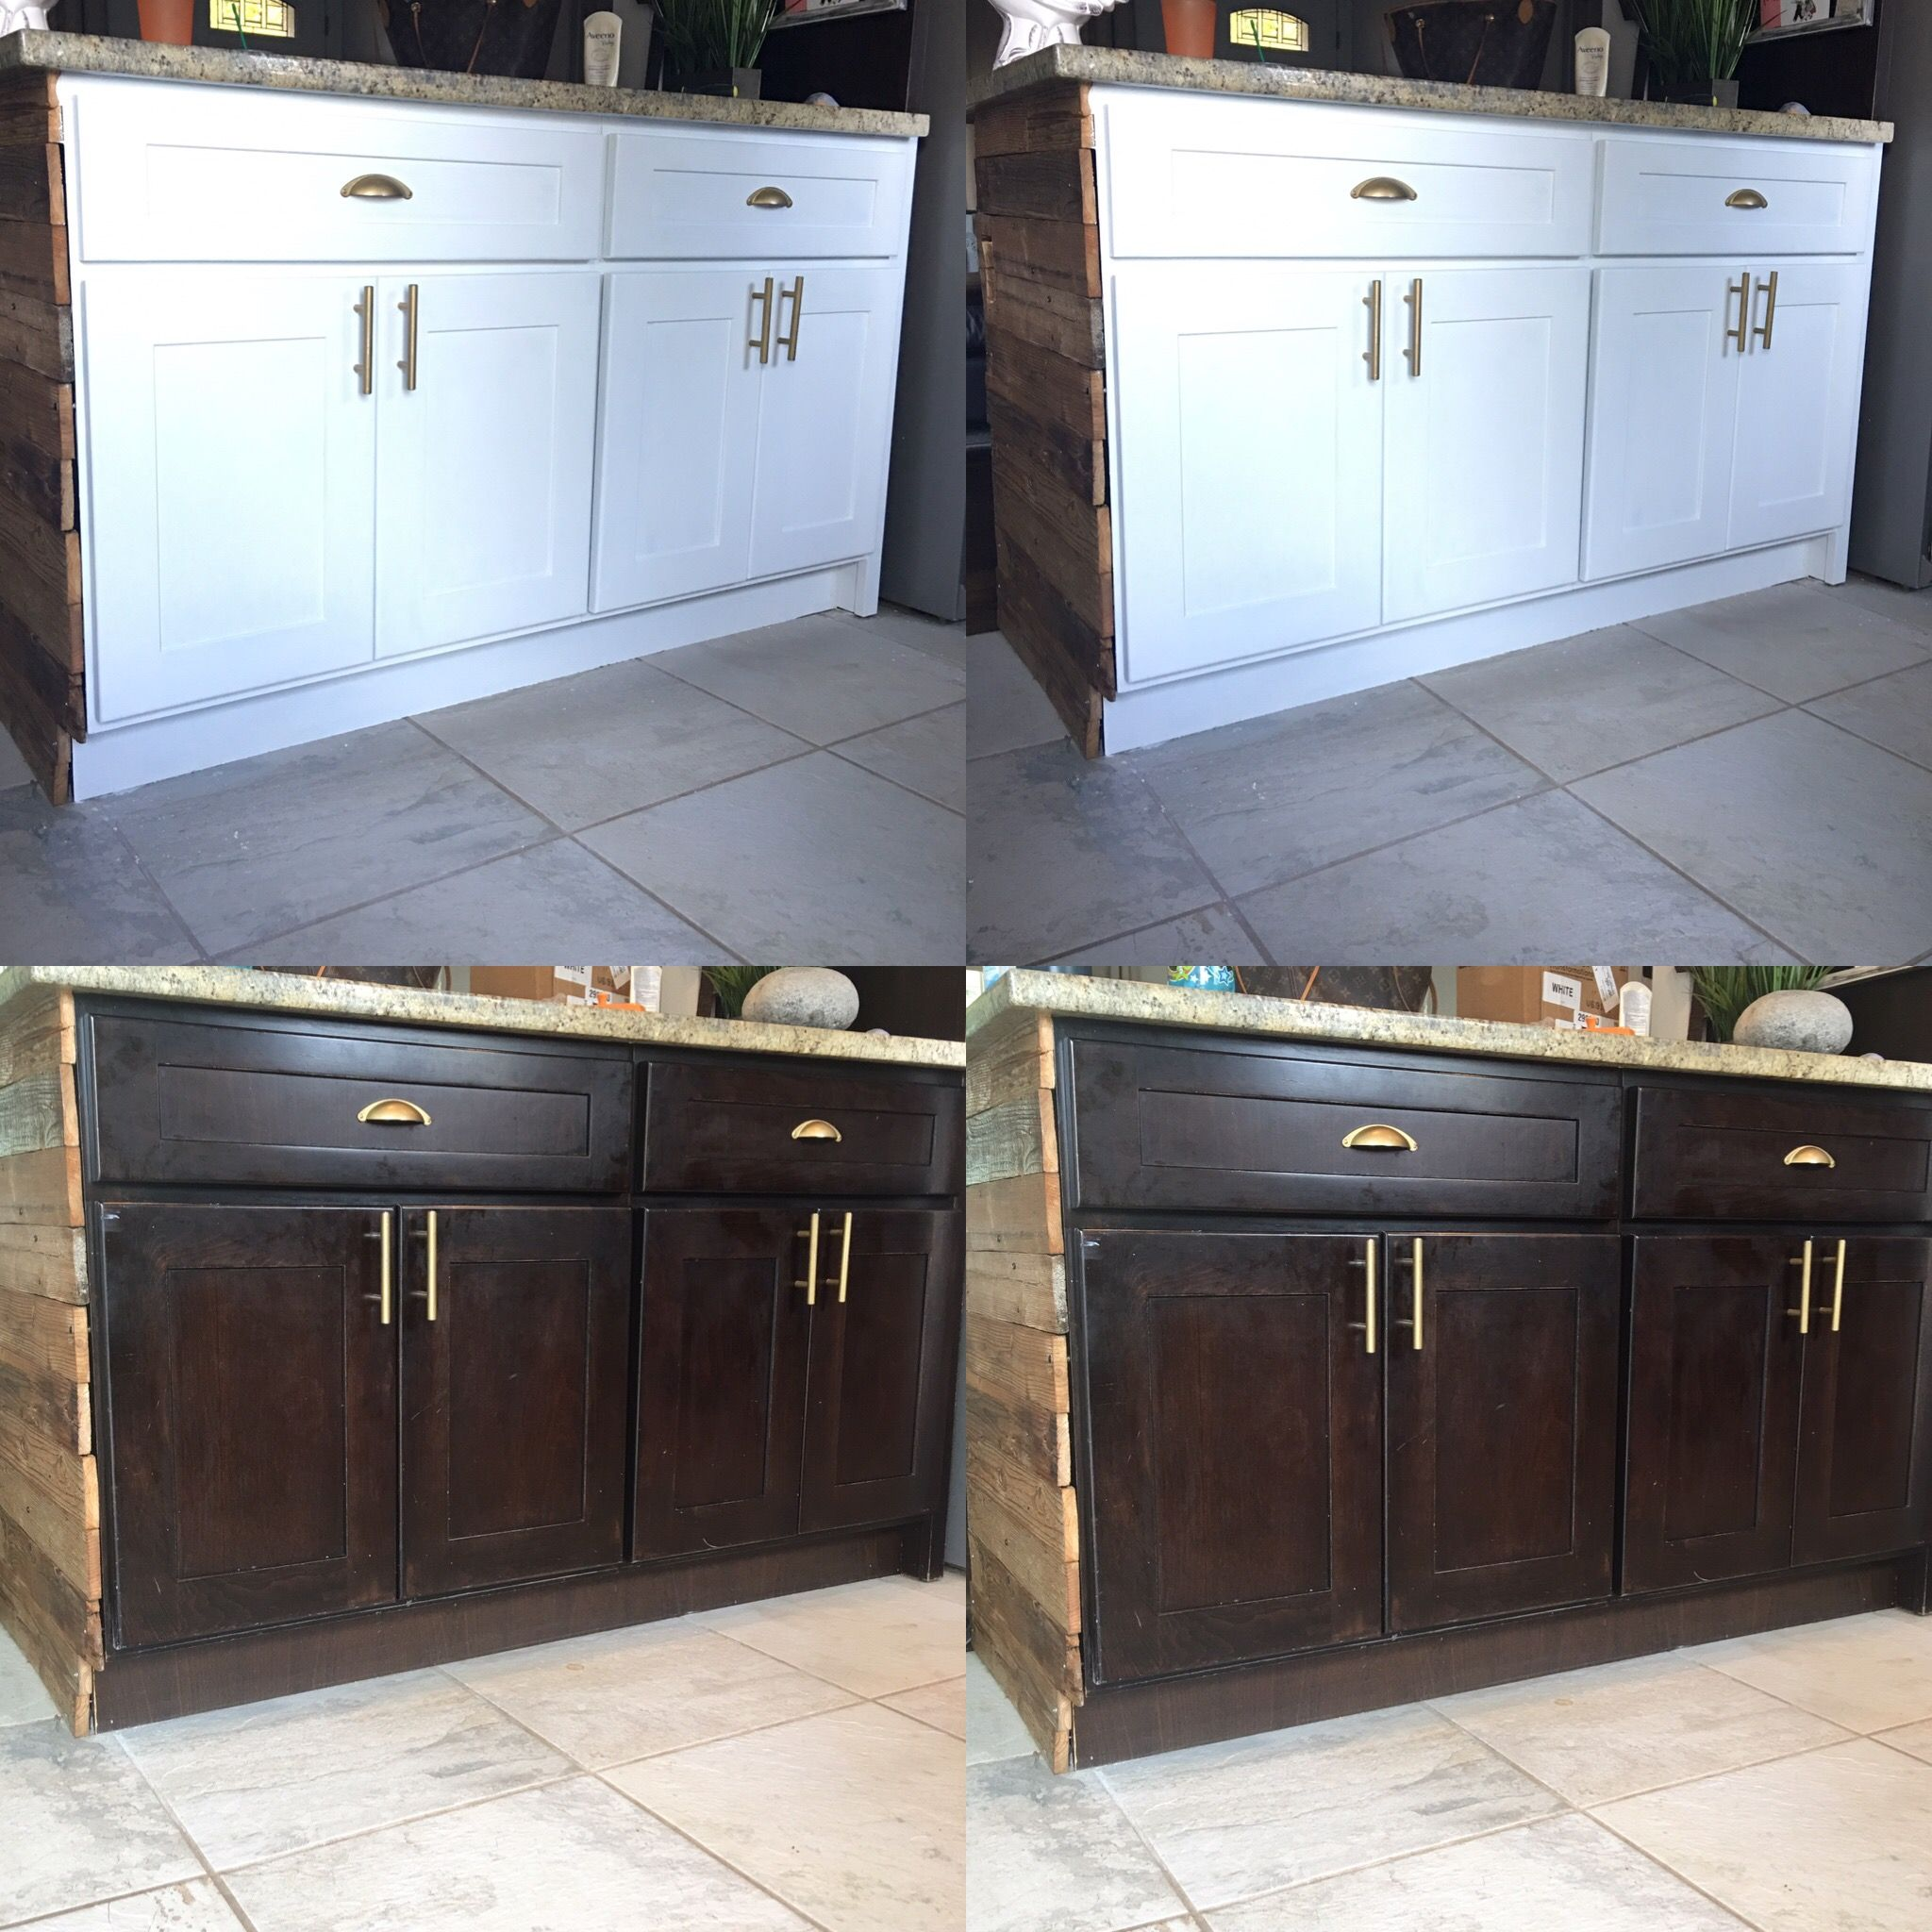 Kitchen Transformations: DYI Kitchen Cabinet Makeover With Rust-Oleum Cabinet